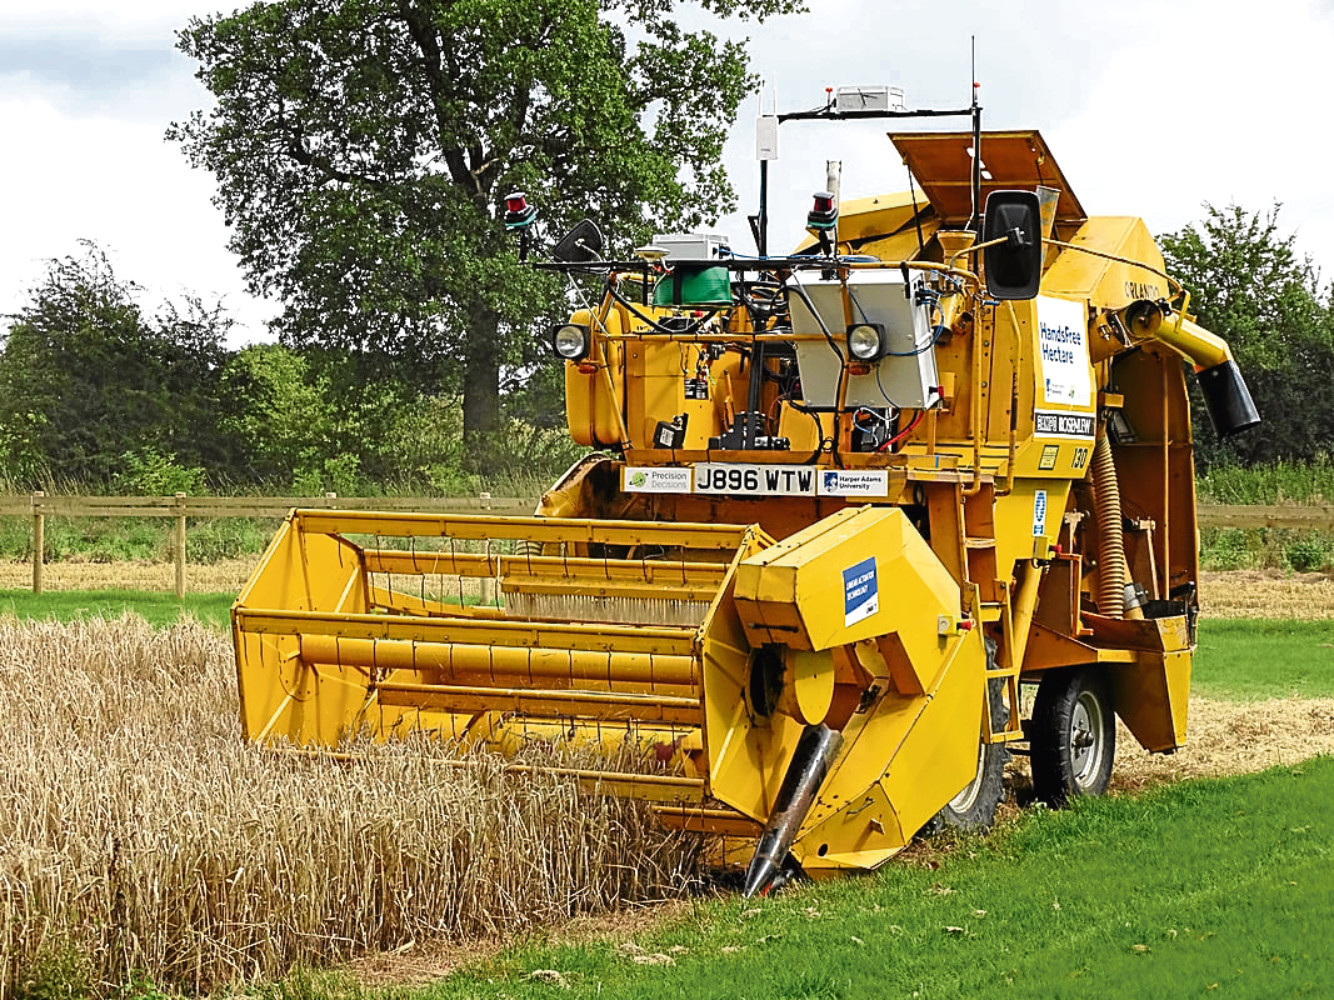 The remote control harvester used in the Harper Adams project.